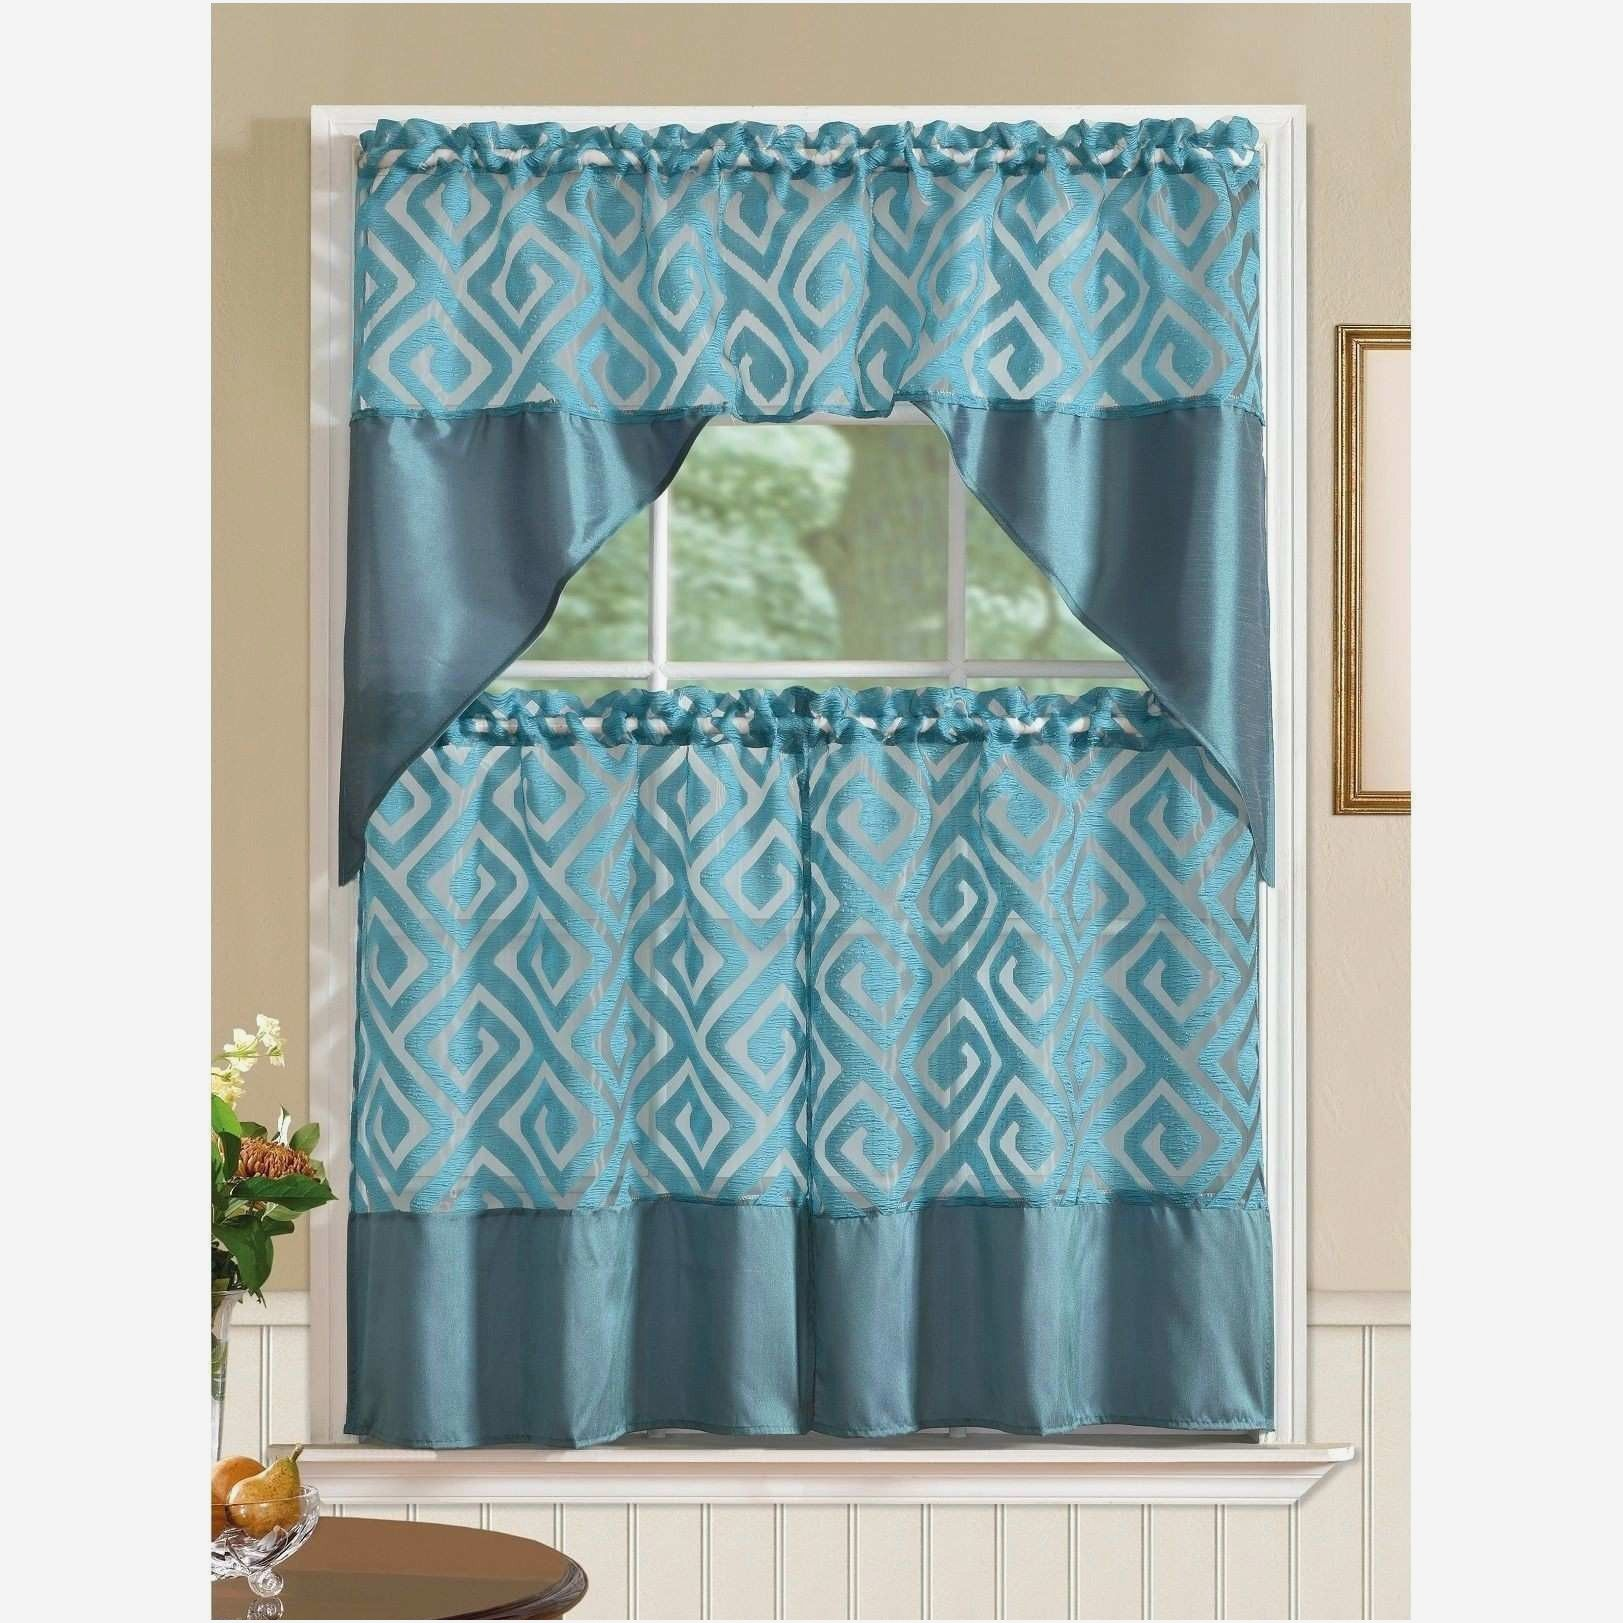 Kitchen Curtains at Jcpenney - Gammoe.com ...